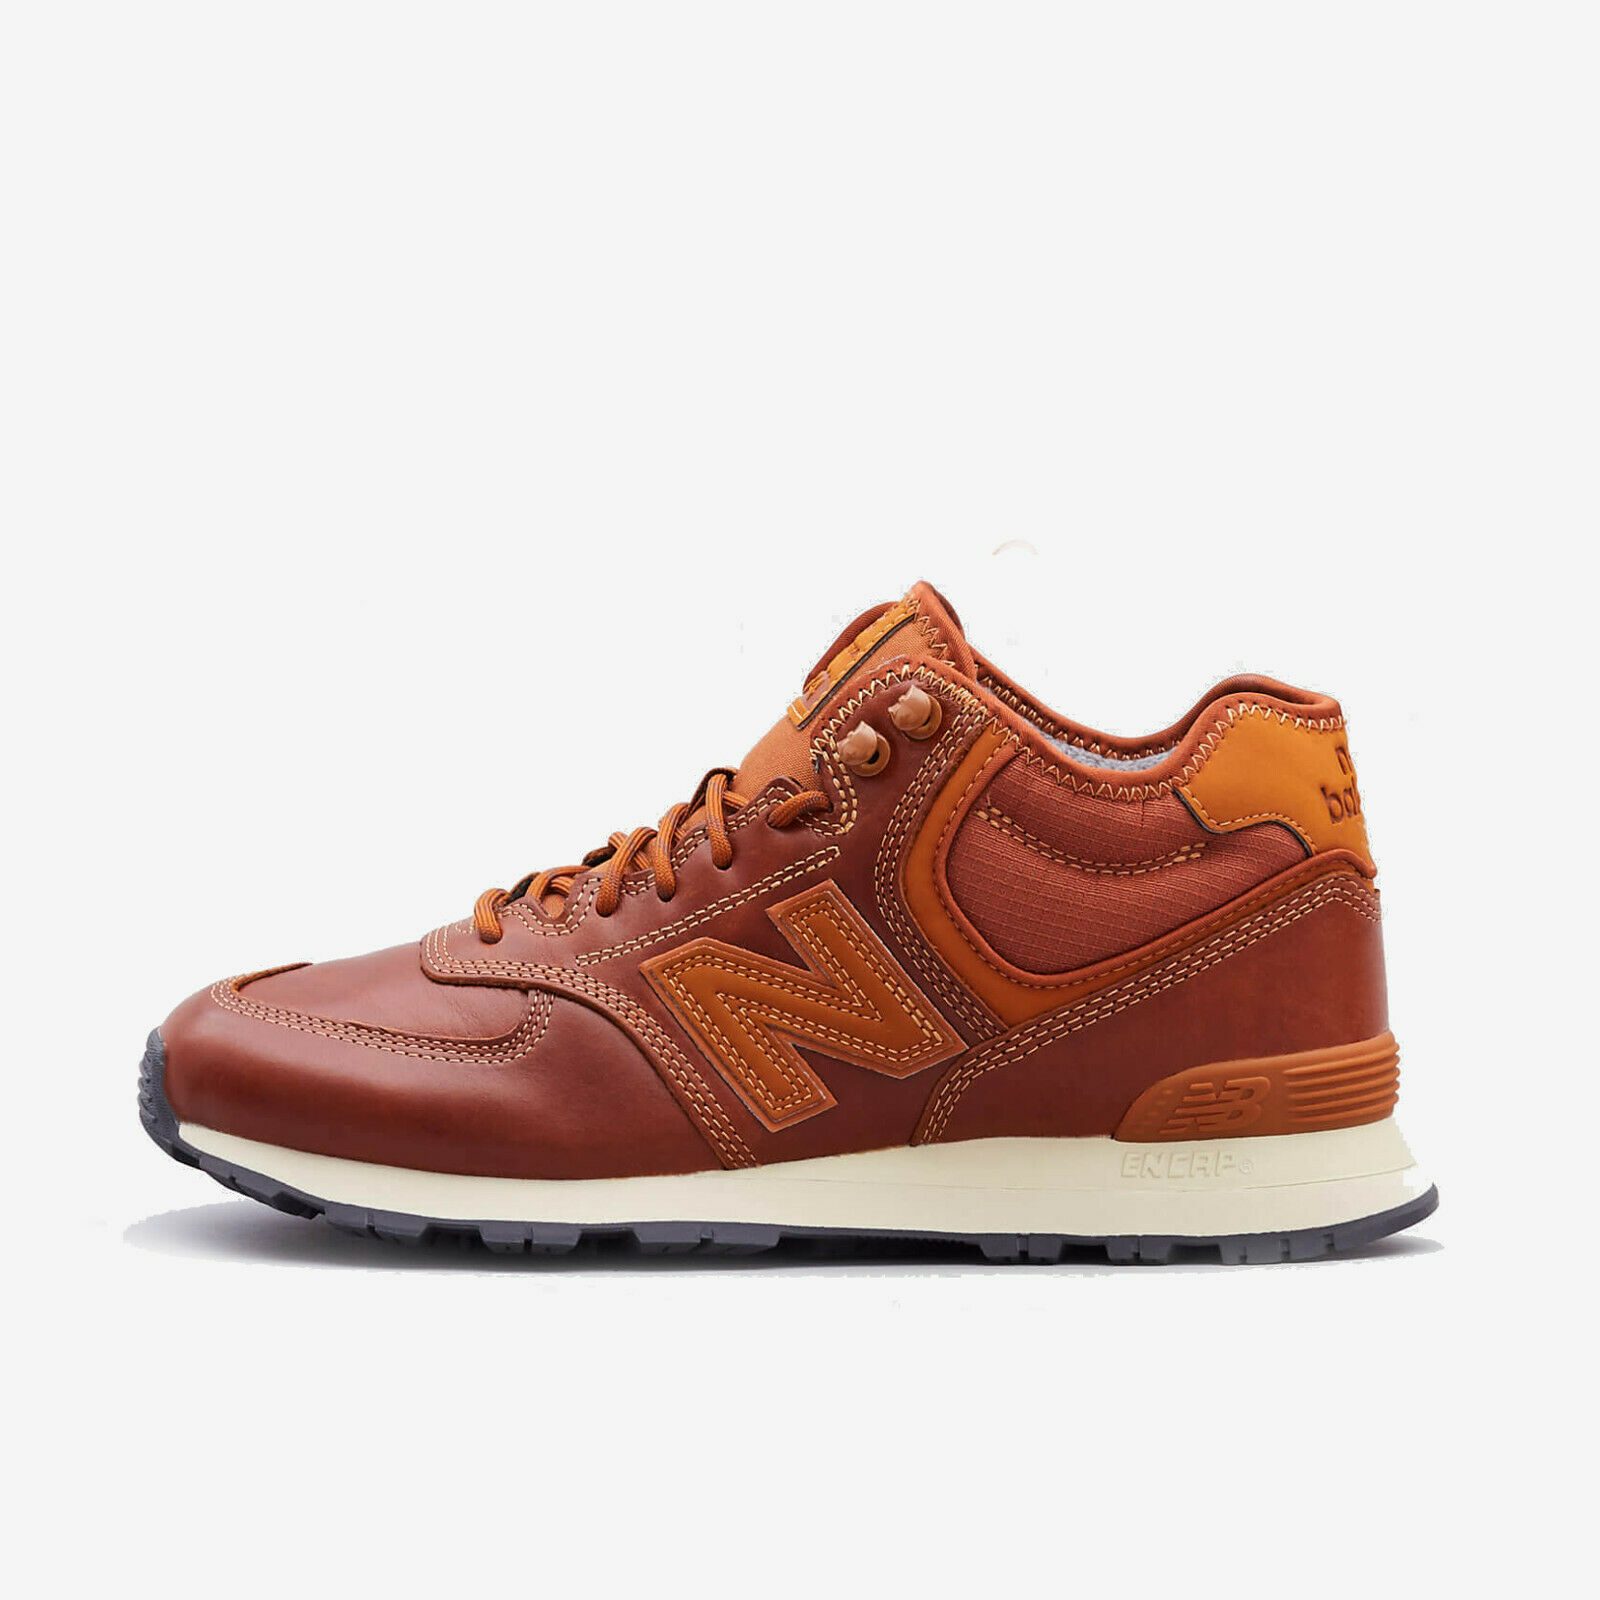 NEW BALANCE MH574OAD BROWN LEATHER